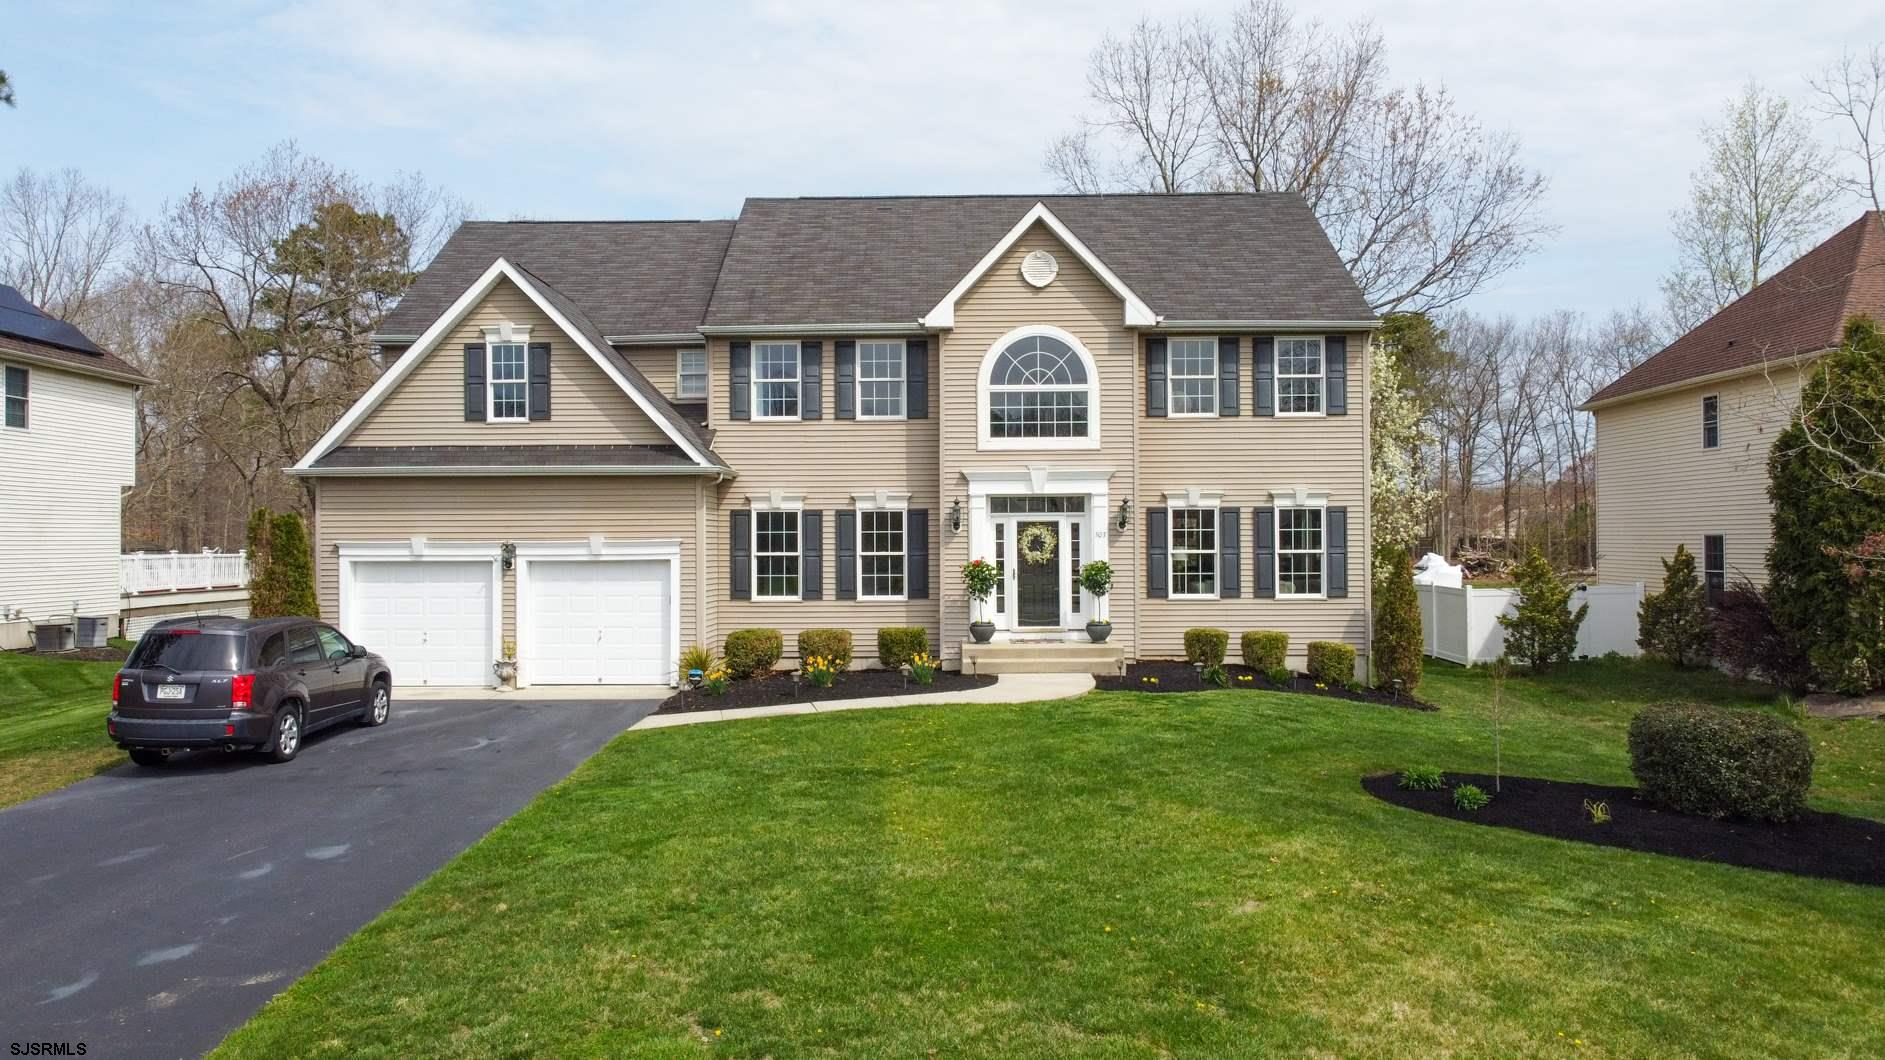 This Chuisano Chelmsford home will capture your eyes from the minute you see it, from the landscape